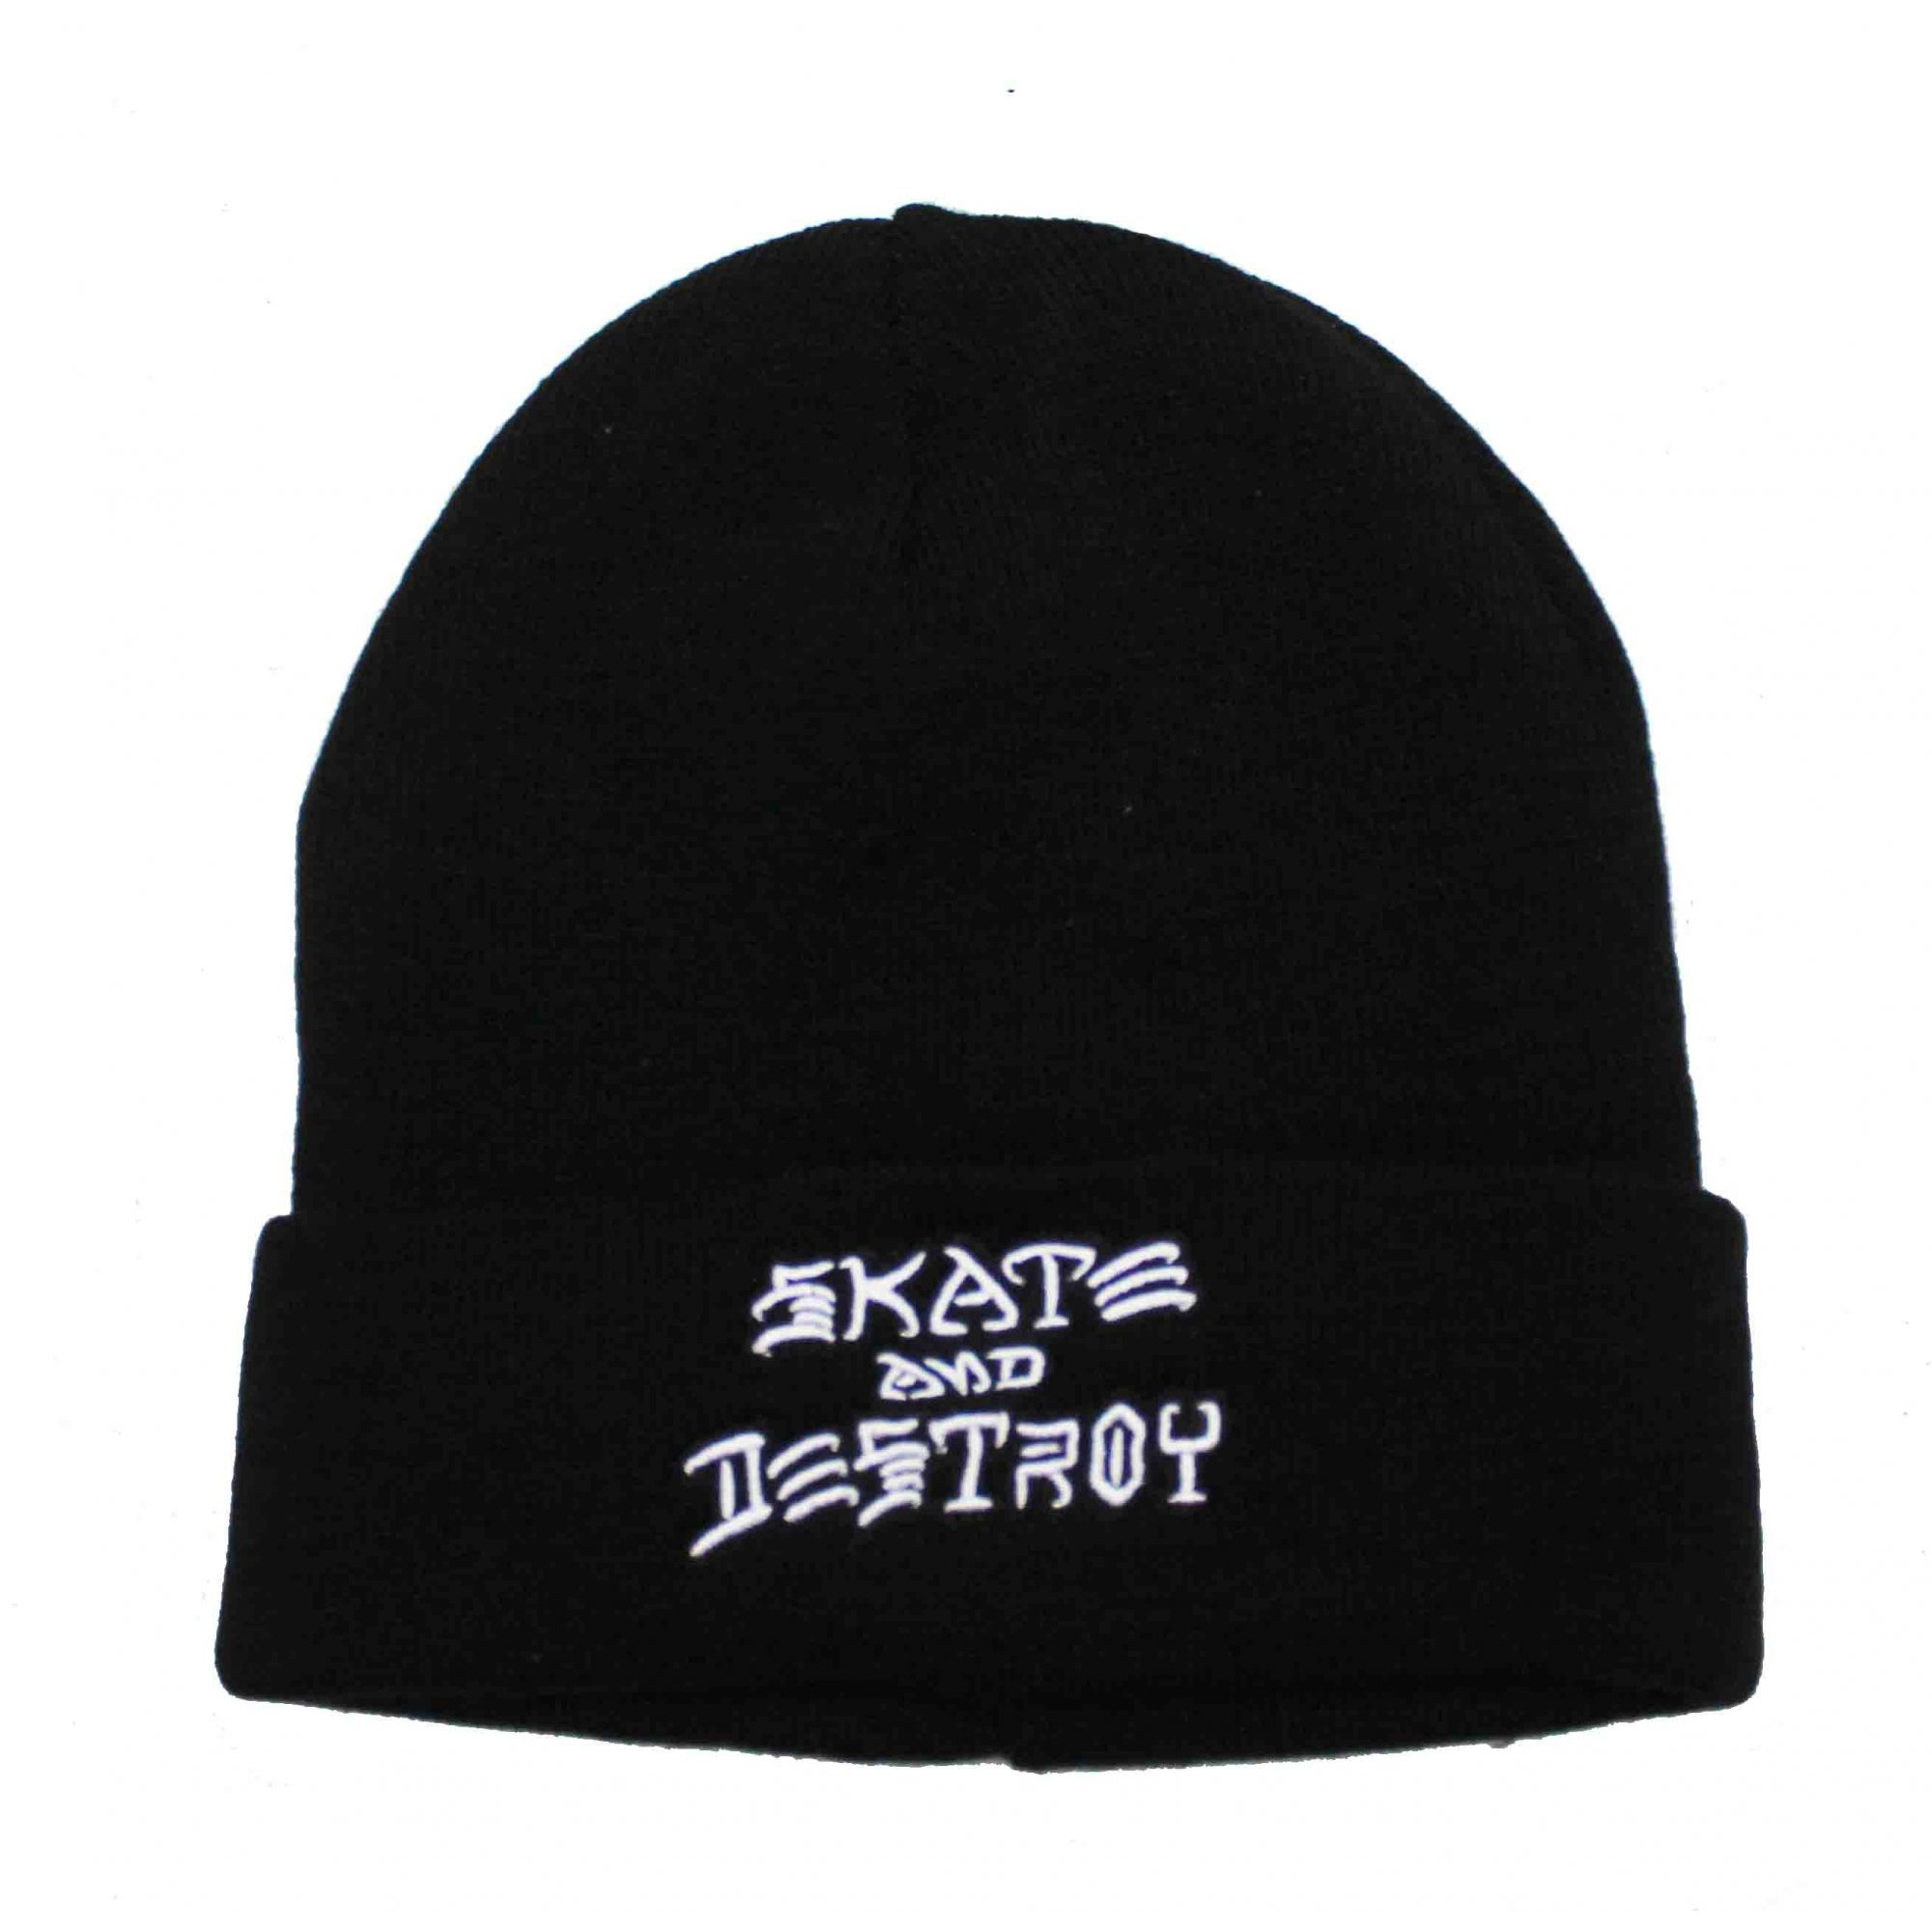 Touca Thrasher Magazine Skate and Destroy  Embroidery Black